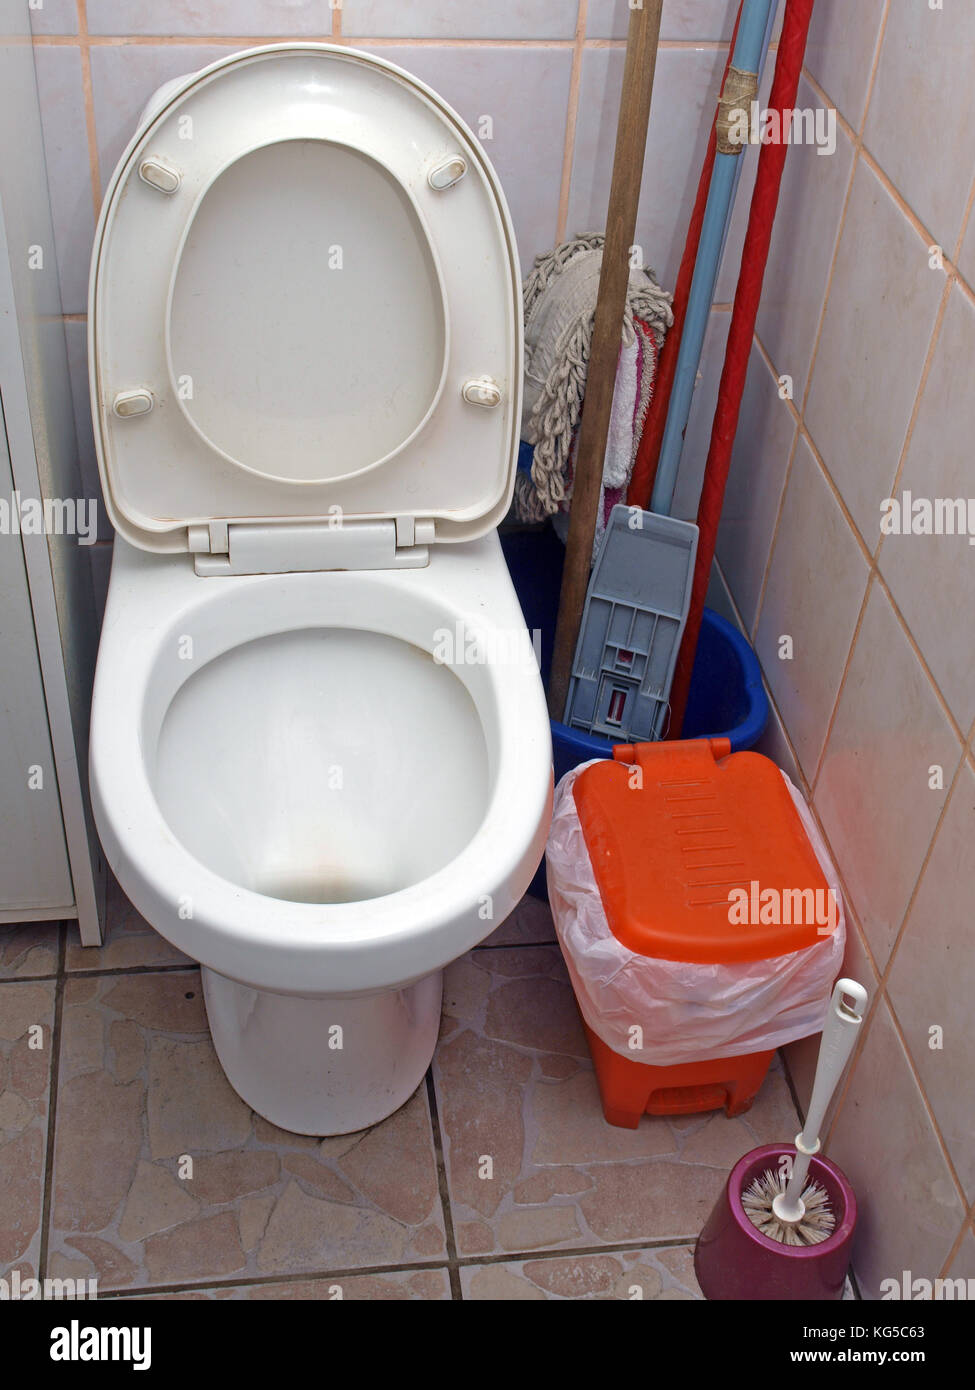 Water closet toilet bowl with open lid - Stock Image